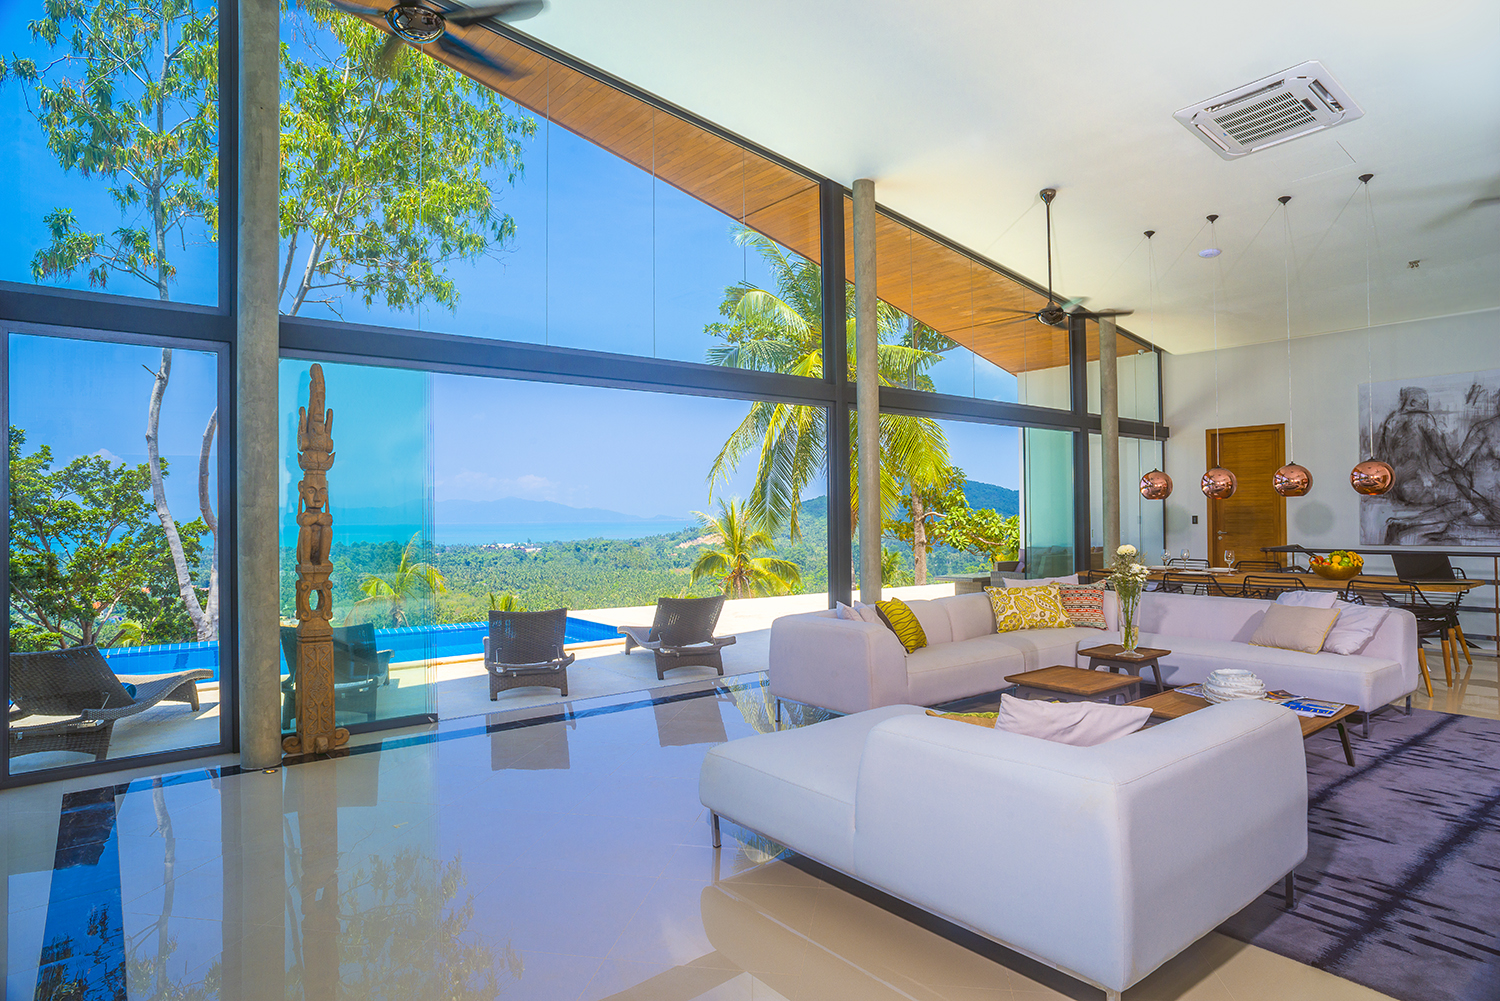 As Secure as Azur - The Residences at Azur Samui offer unprecedented ...